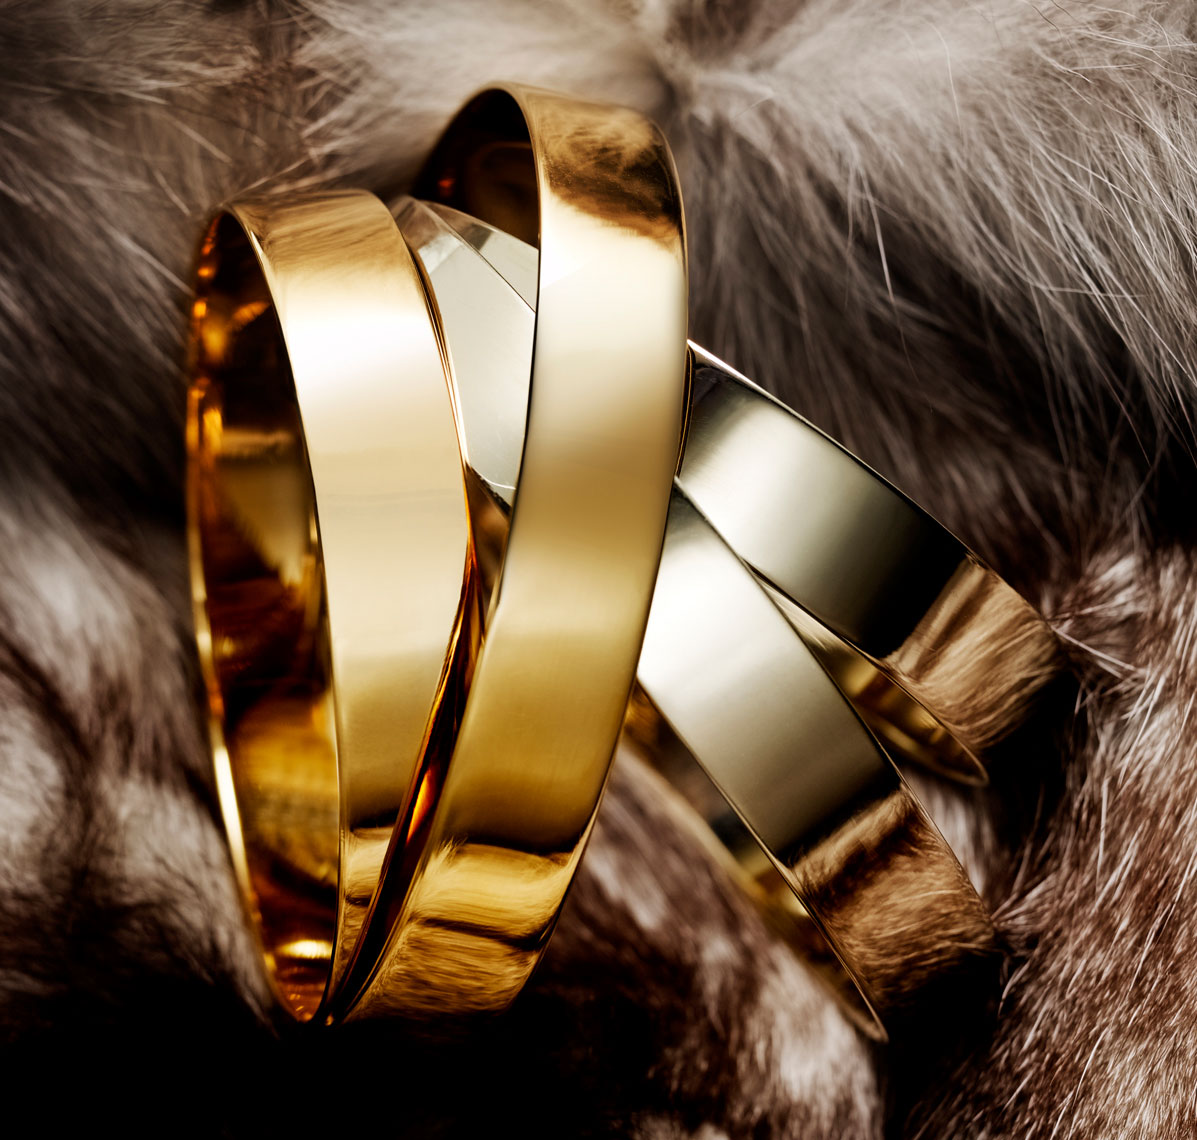 Liam Goodman - Still Life Photographer - Jewelry 7